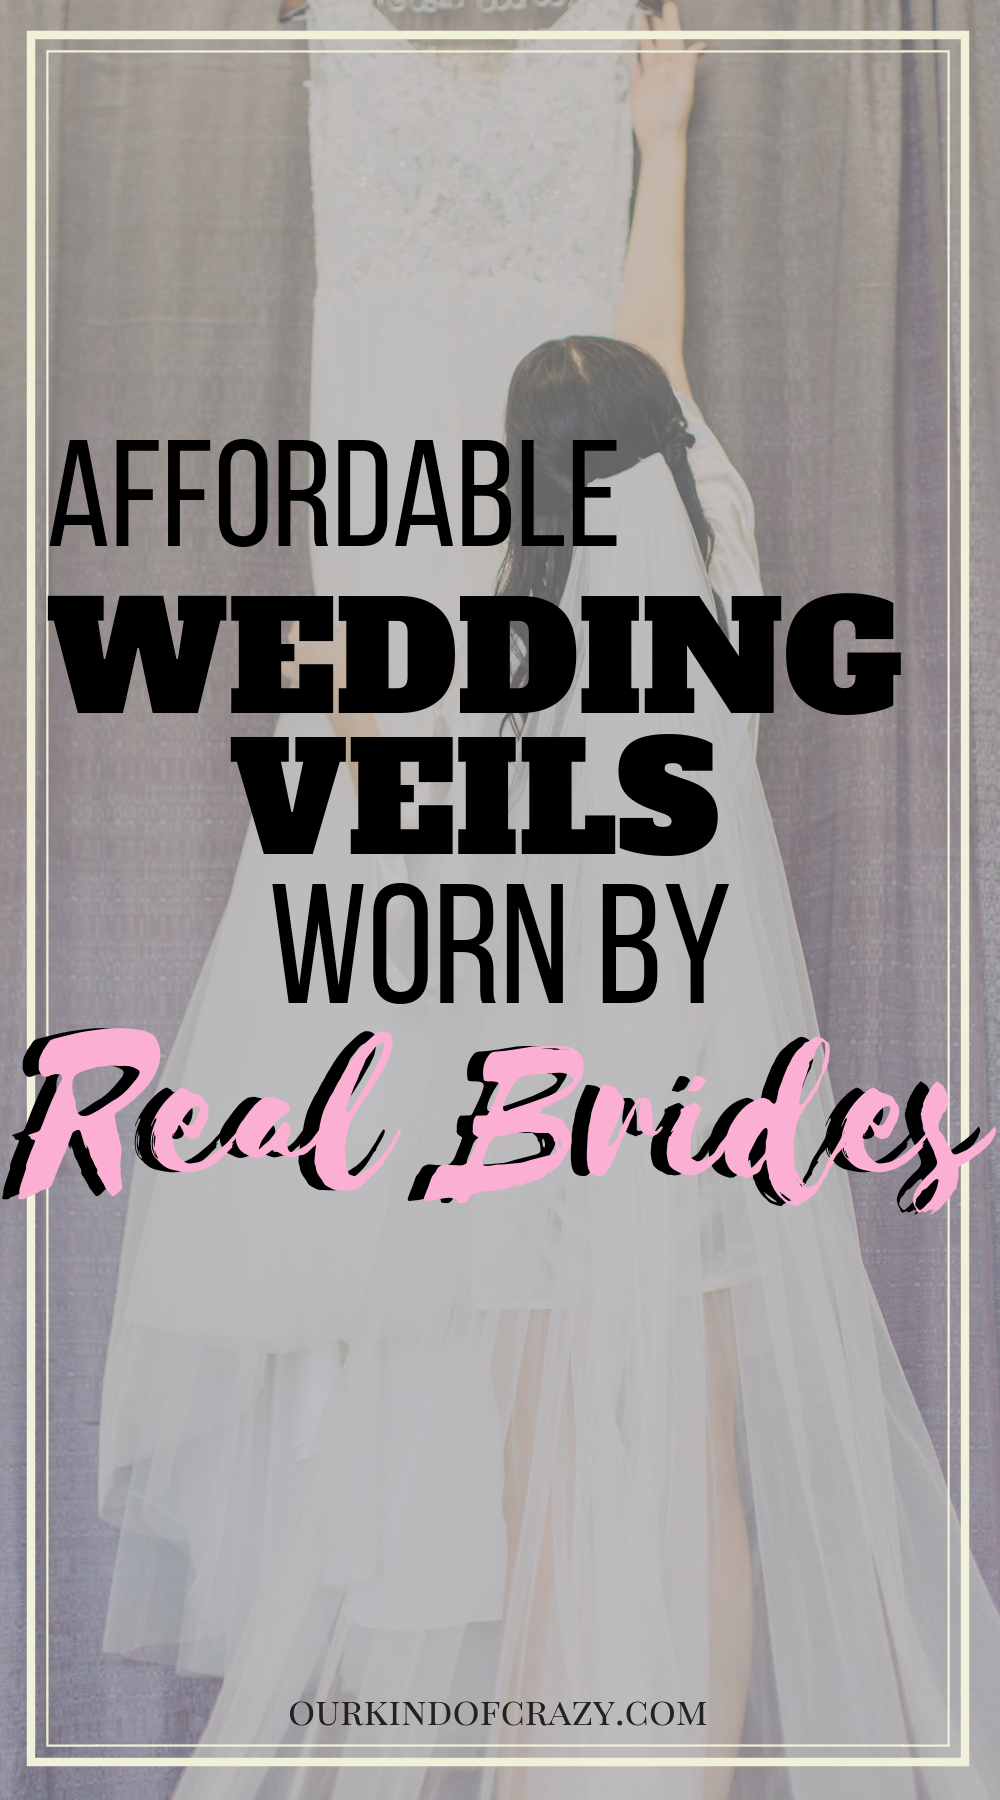 Best Wedding Veils From Amazon-Cheap wedding veils